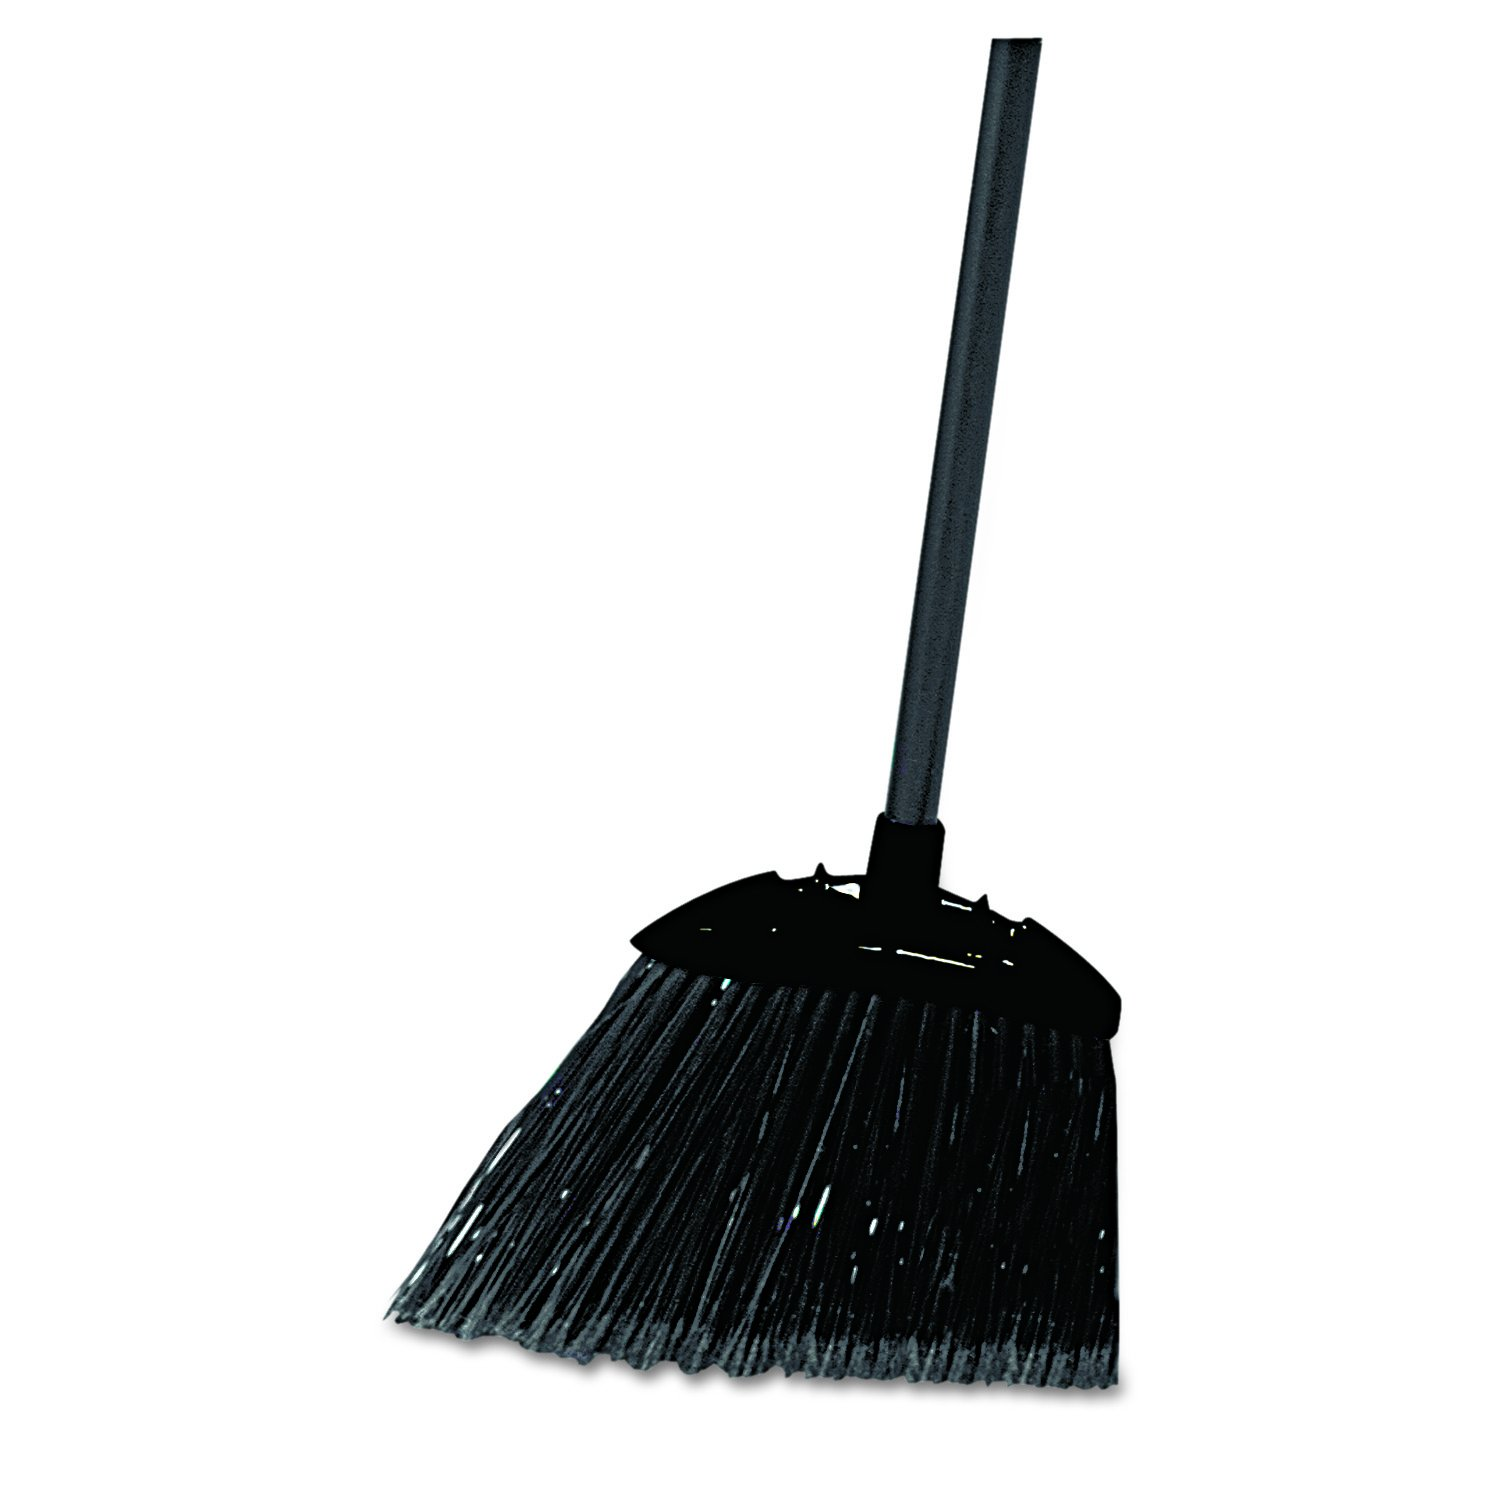 Rubbermaid Commercial Executive Lobby Broom with Vinyl Handle Rubbermaid Commercial Products FG637400BLA